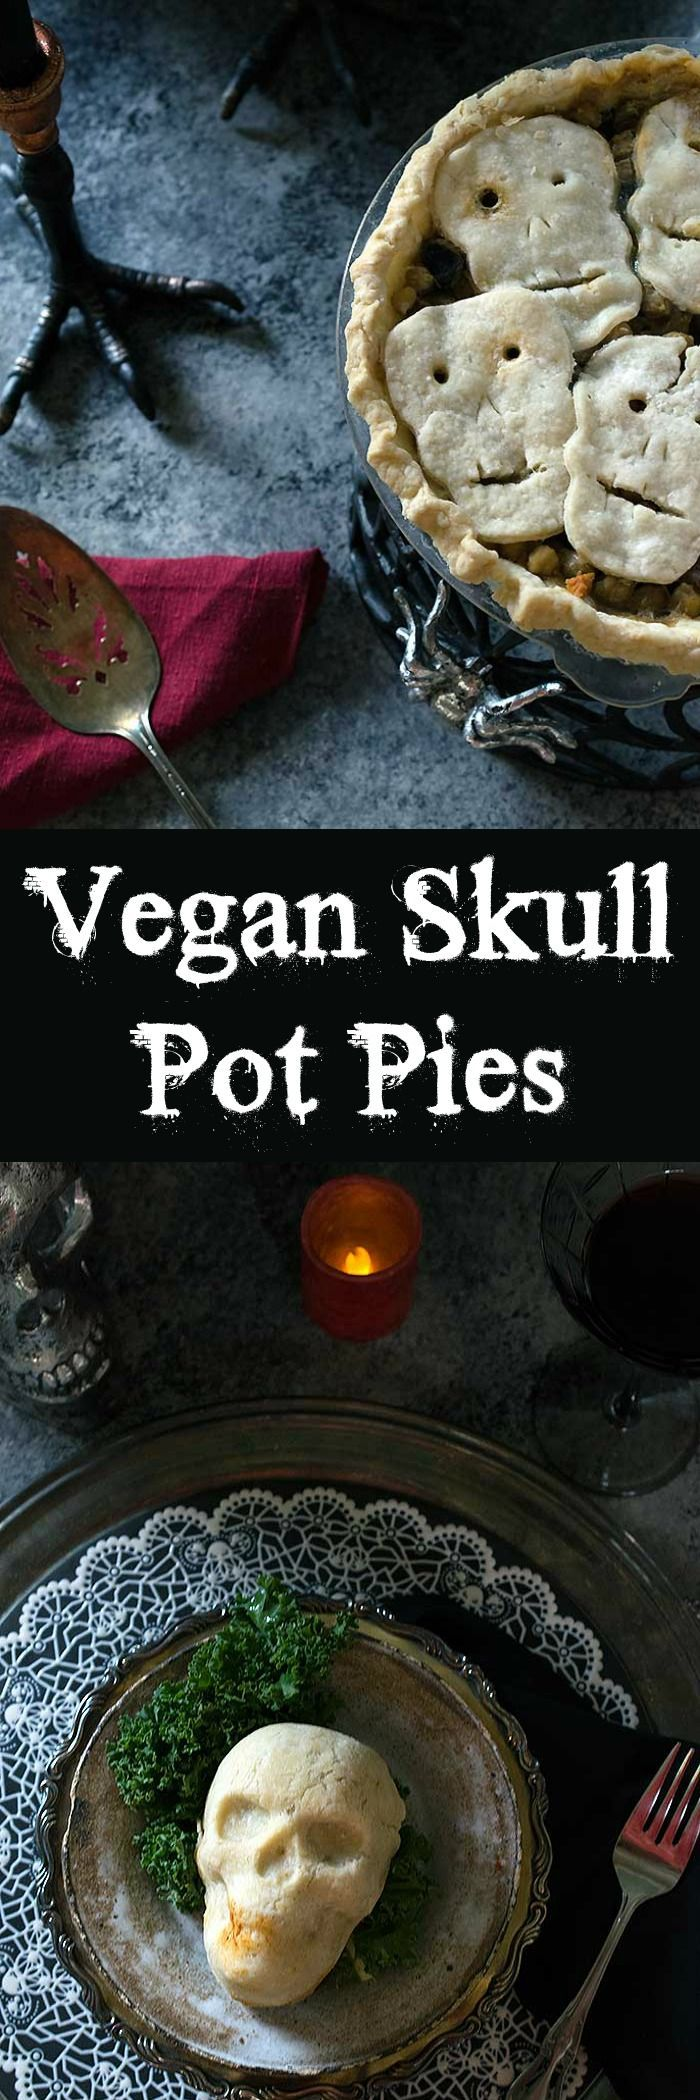 Spooky Skull Vegan Pot Pies for a Haunted Halloween Dinner. Plus you send your kids off trick or treating full of veggies!